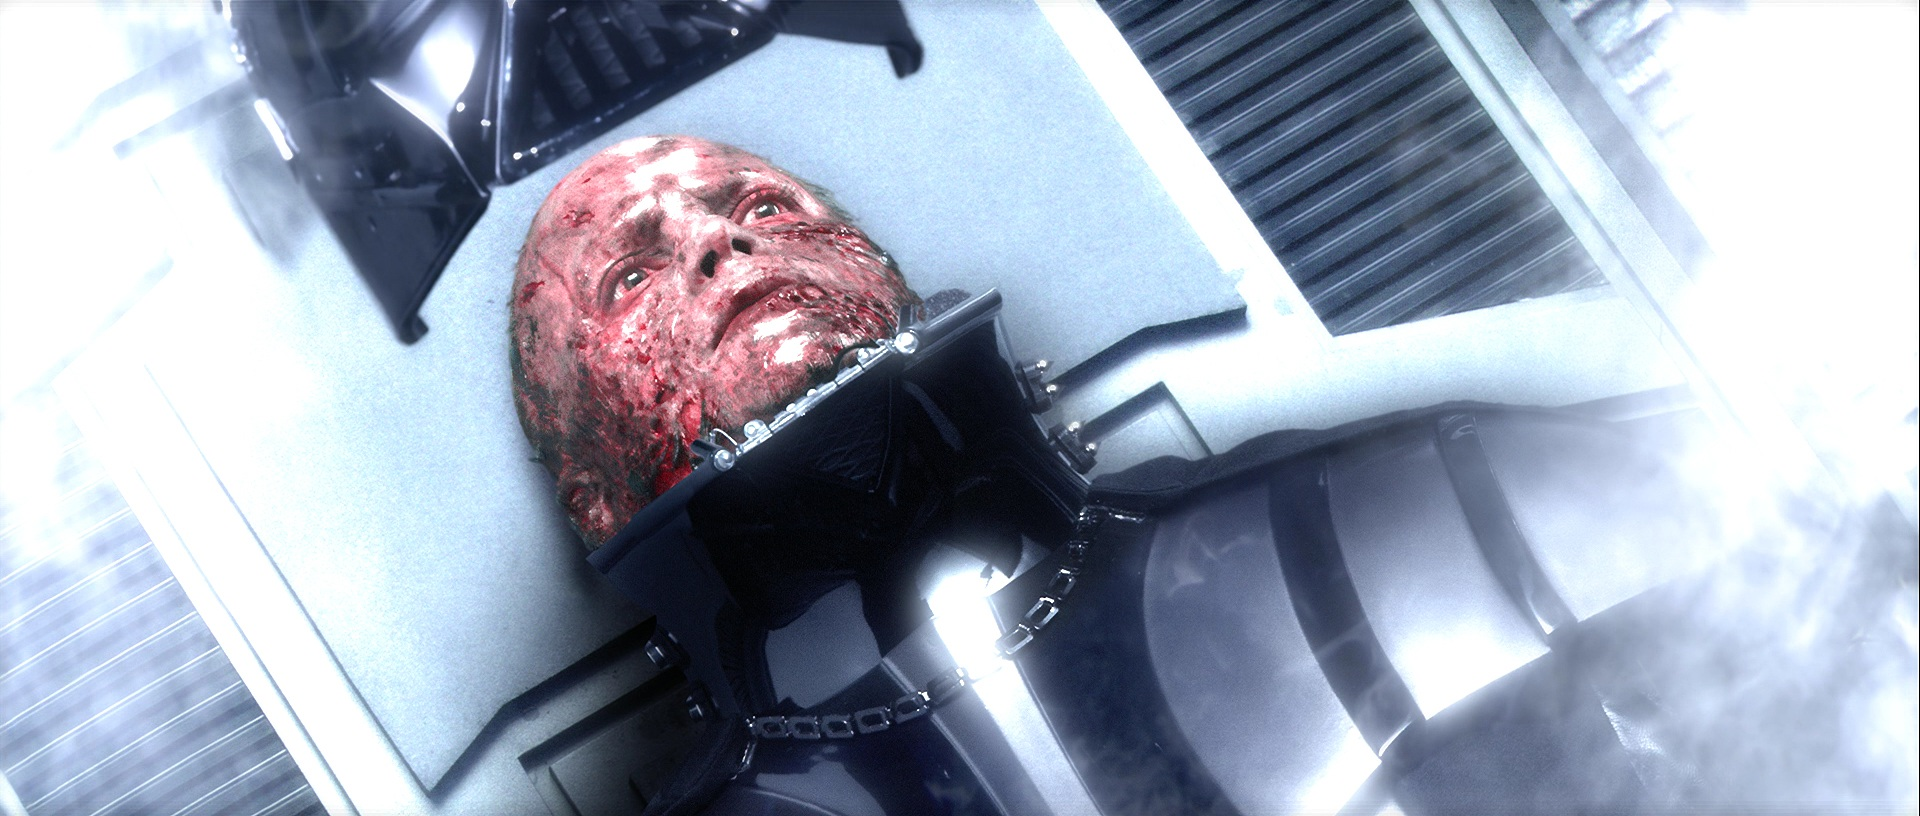 The Darth Vader helmet is put on Anakin's head in Star Wars: Episode III -- Revenge of the Sith